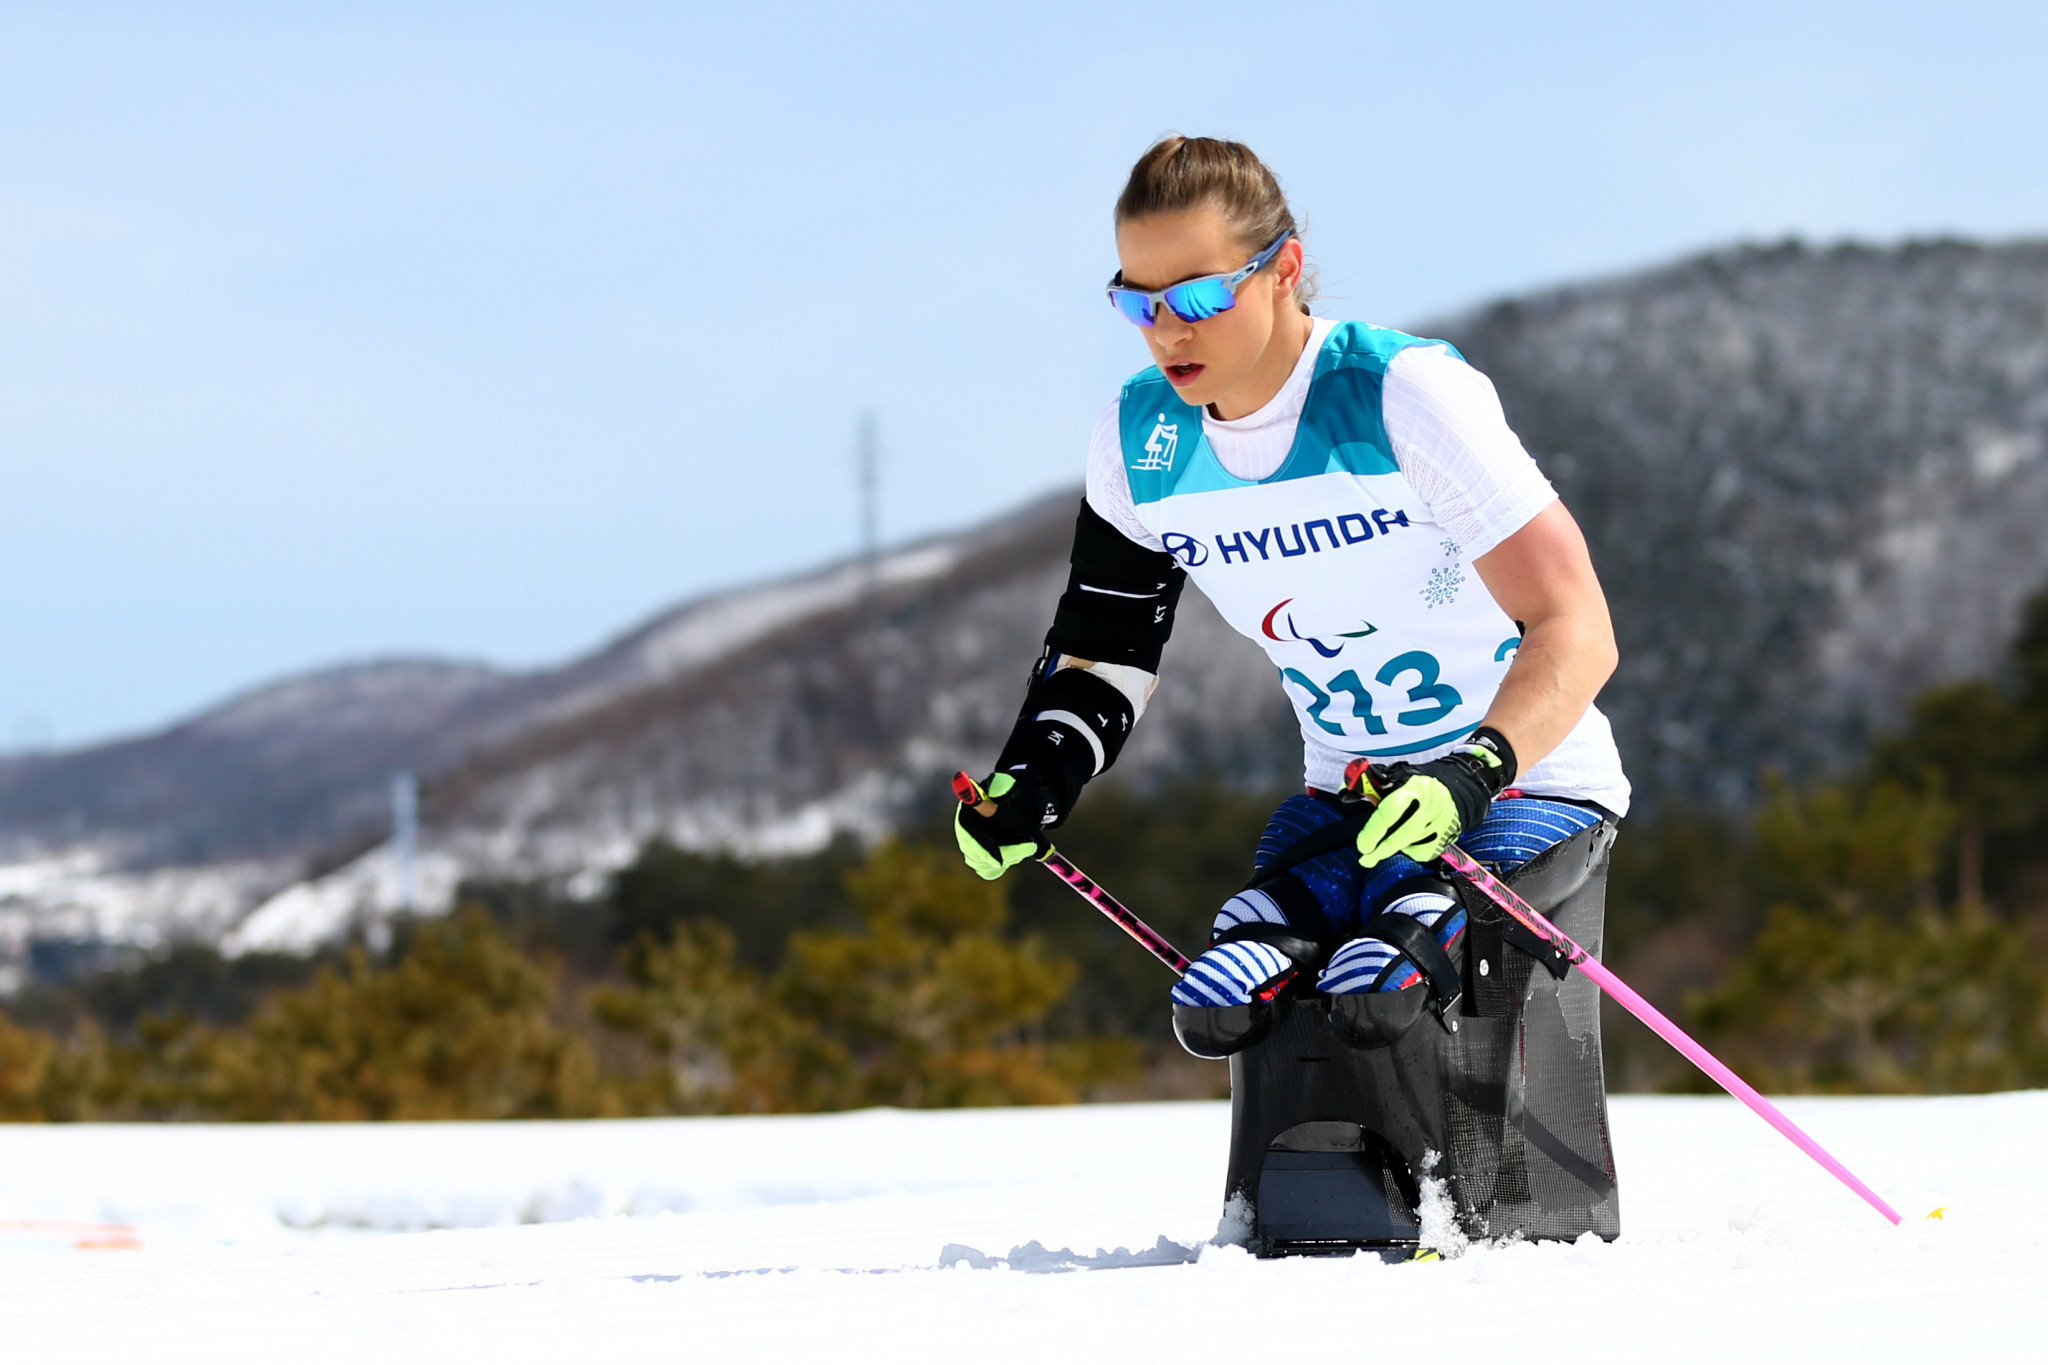 US Paralympics names national and development Nordic skiing teams for 2019-2020 season